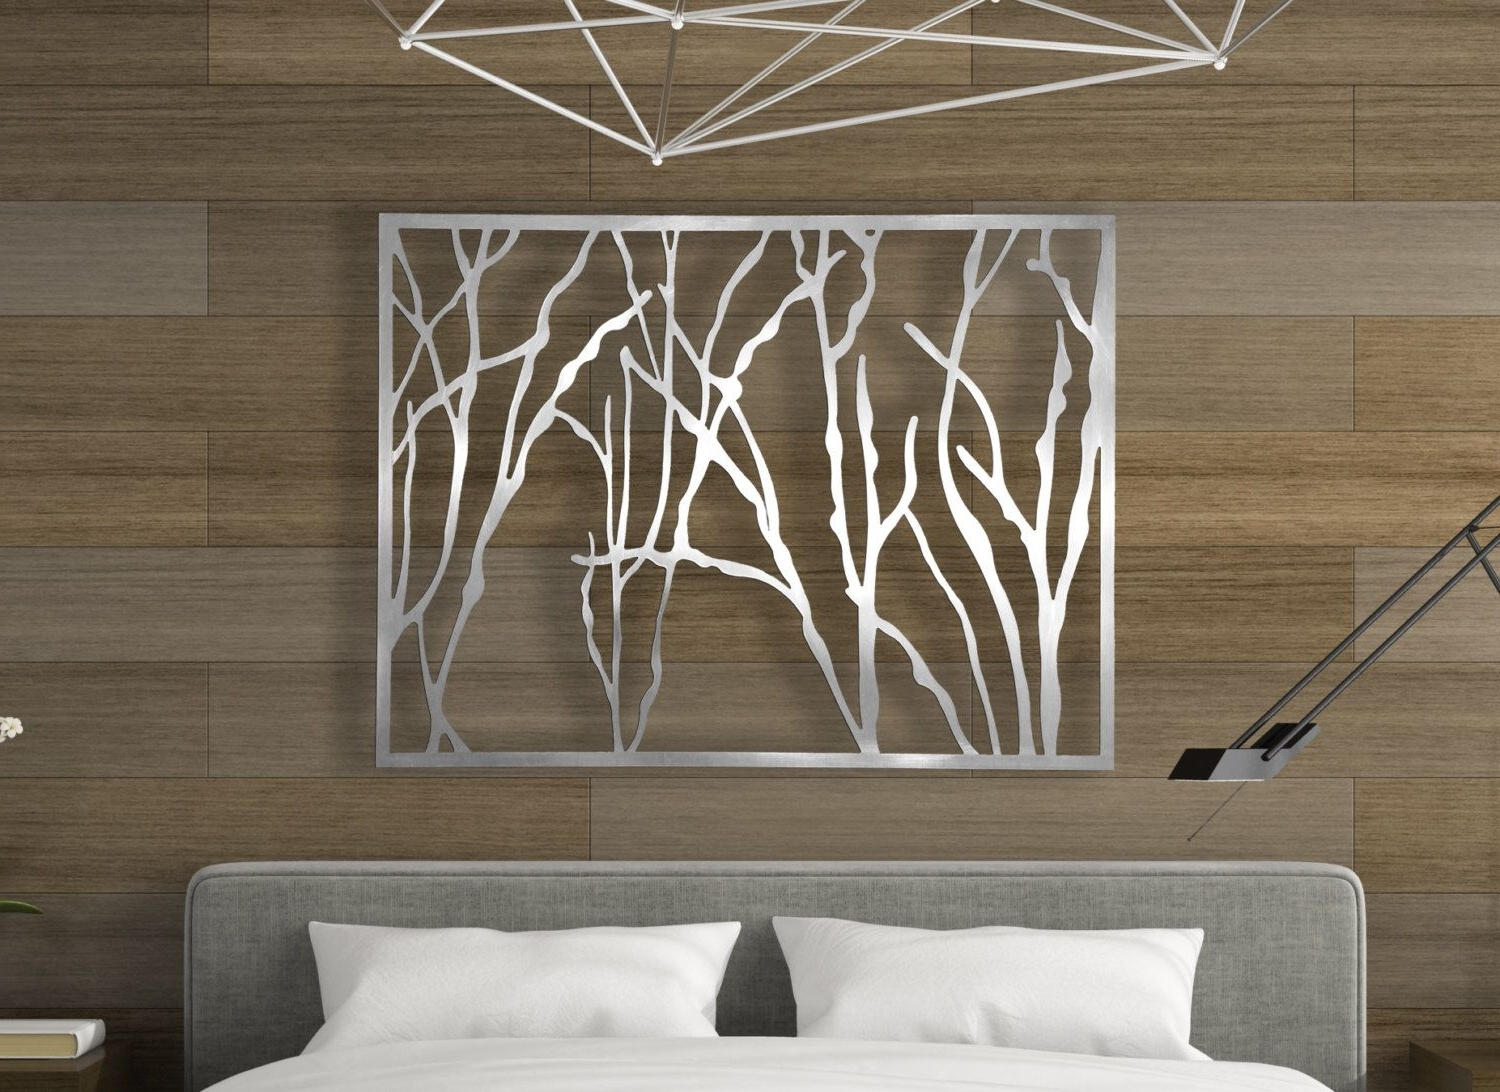 Decorative Wall Art In Well Liked Laser Cut Metal Decorative Wall Art Panel Sculpture For Home, Office (View 5 of 15)